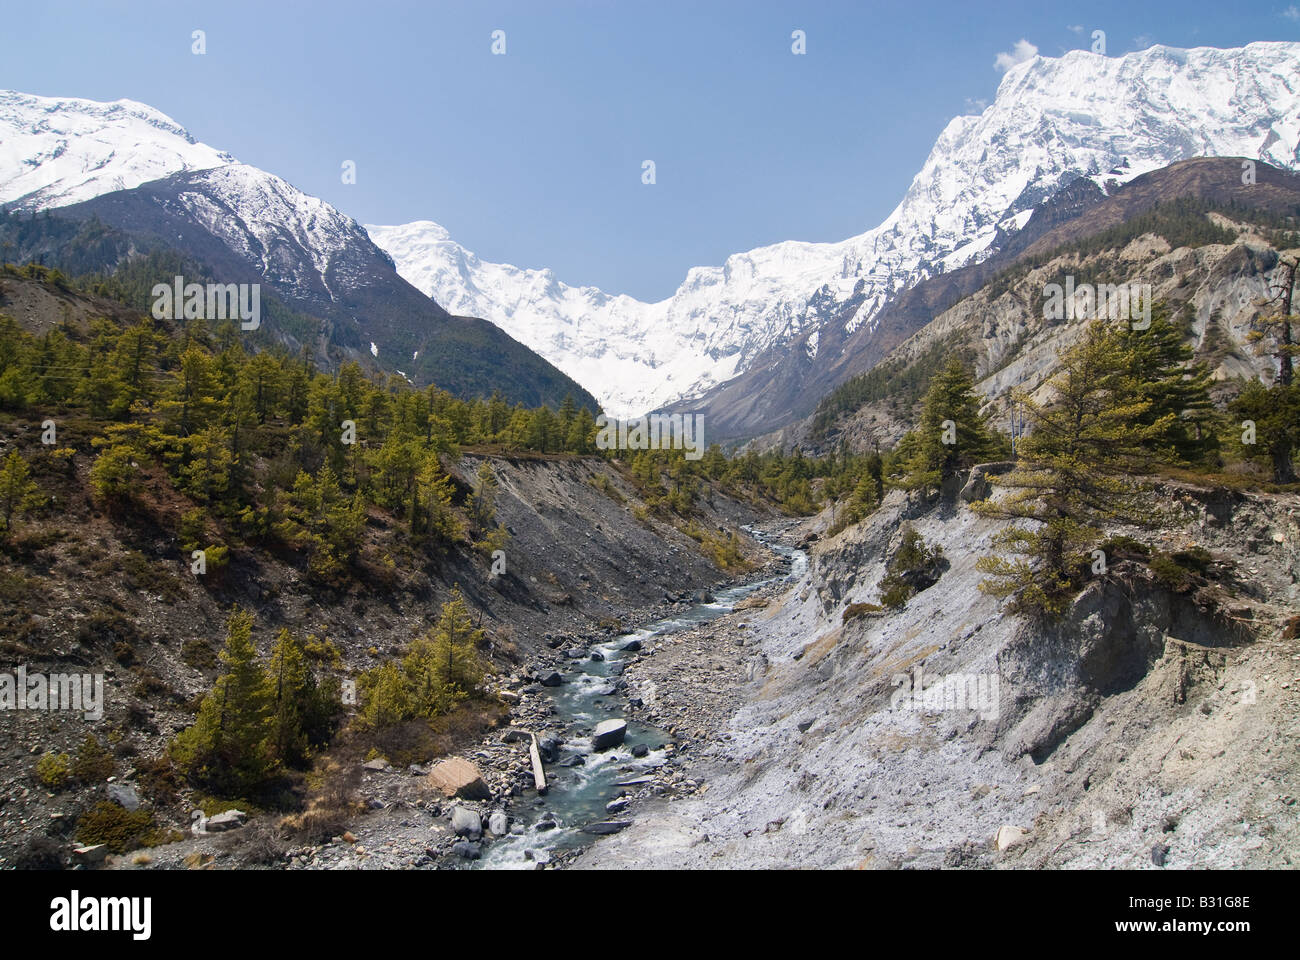 Manang Valley, Annapurna Mountains, Nepal - Stock Image